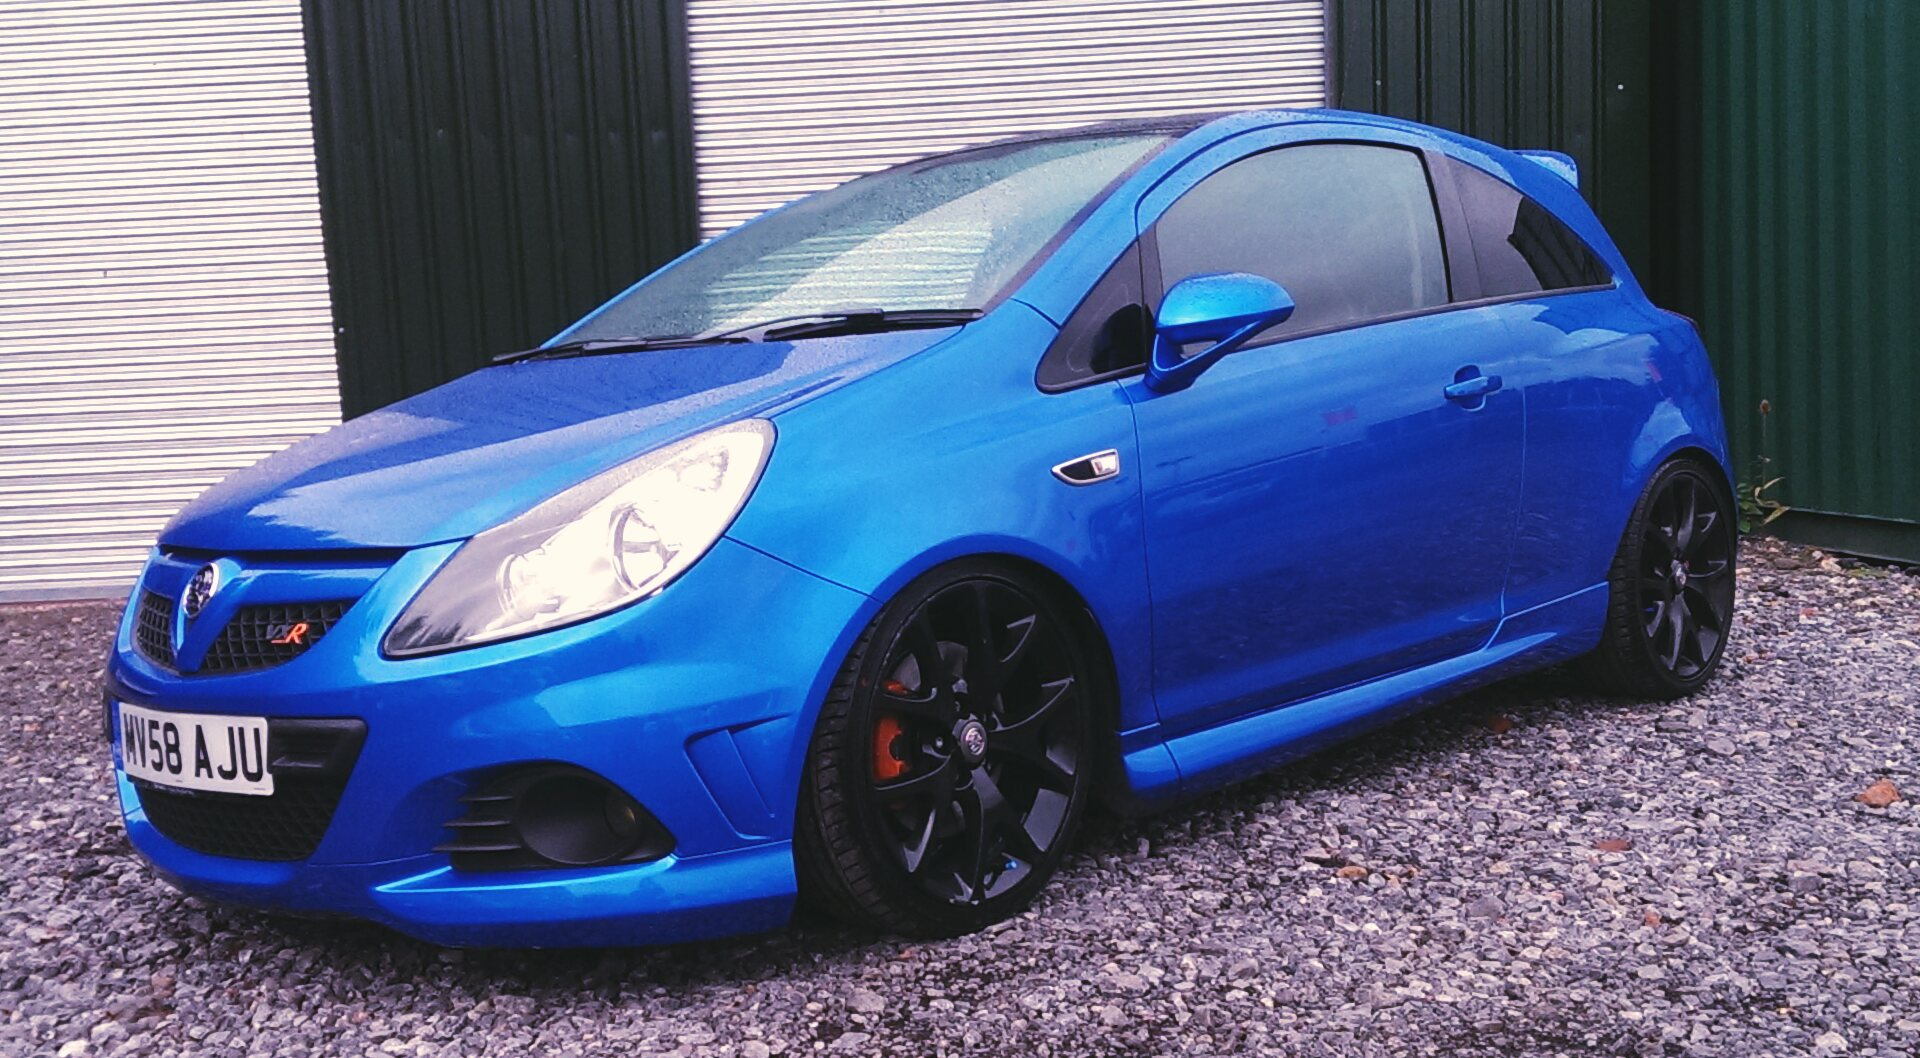 Anti Theft System >> VAUXHALL CORSA VXR 16V TURBO £3'995 - Edwins Autos LtdEdwins Autos Ltd